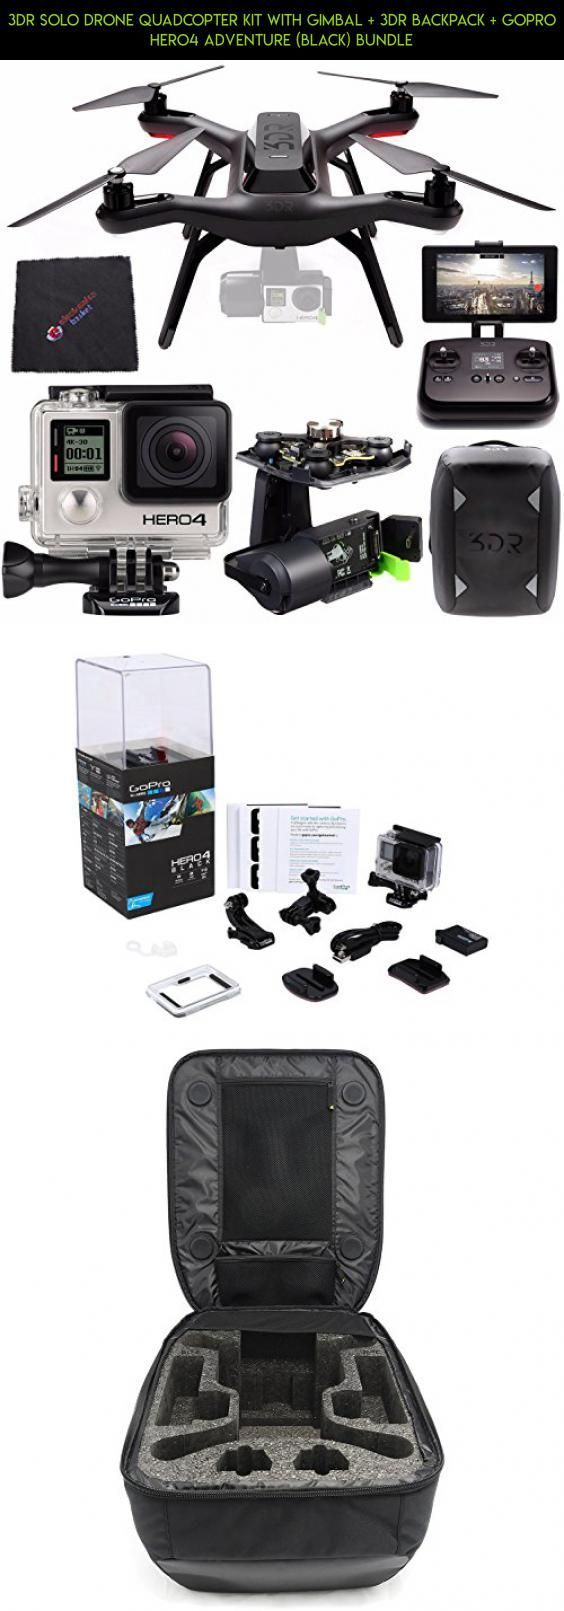 3DR Solo Drone Quadcopter Kit with Gimbal + 3DR Backpack + GoPro HERO4 Adventure (Black) Bundle #tech #racing #solo #fpv #parts #drone #backpack #plans #camera #shopping #gadgets #products #technology #for #kit #3dr